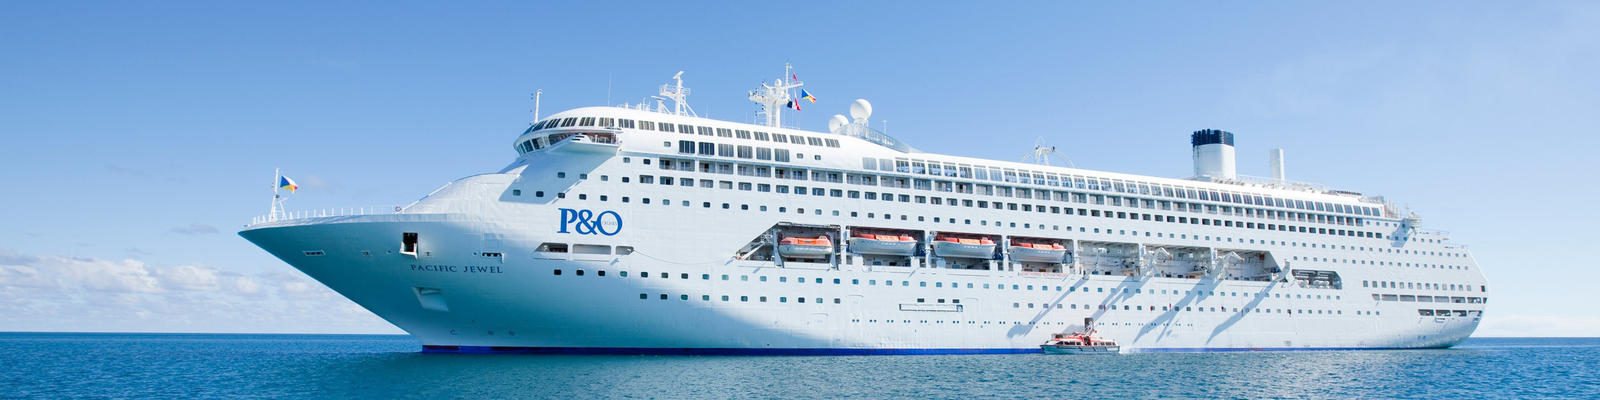 PO Australia Pacific Jewel Cruise Ship Review Photos - Cruise ship pacific